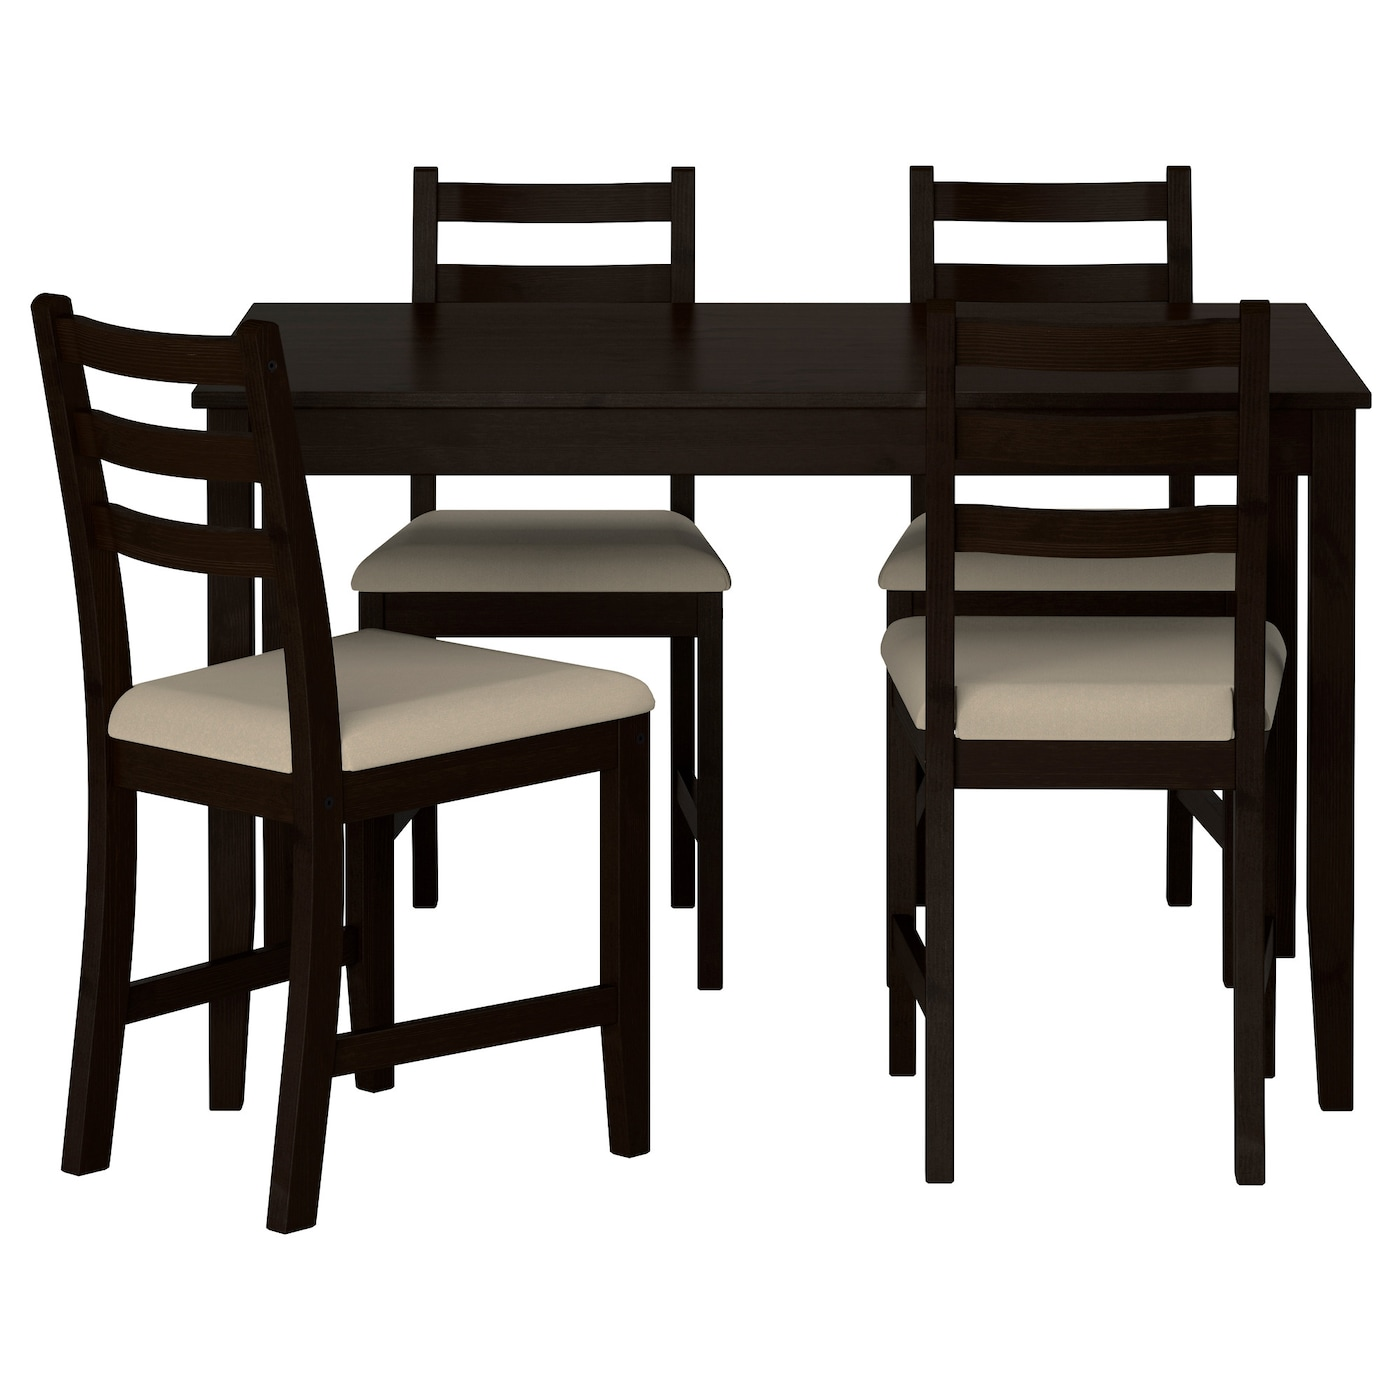 Lerhamn table and 4 chairs black brown ramna beige 118x74 for 4 kitchen table chairs